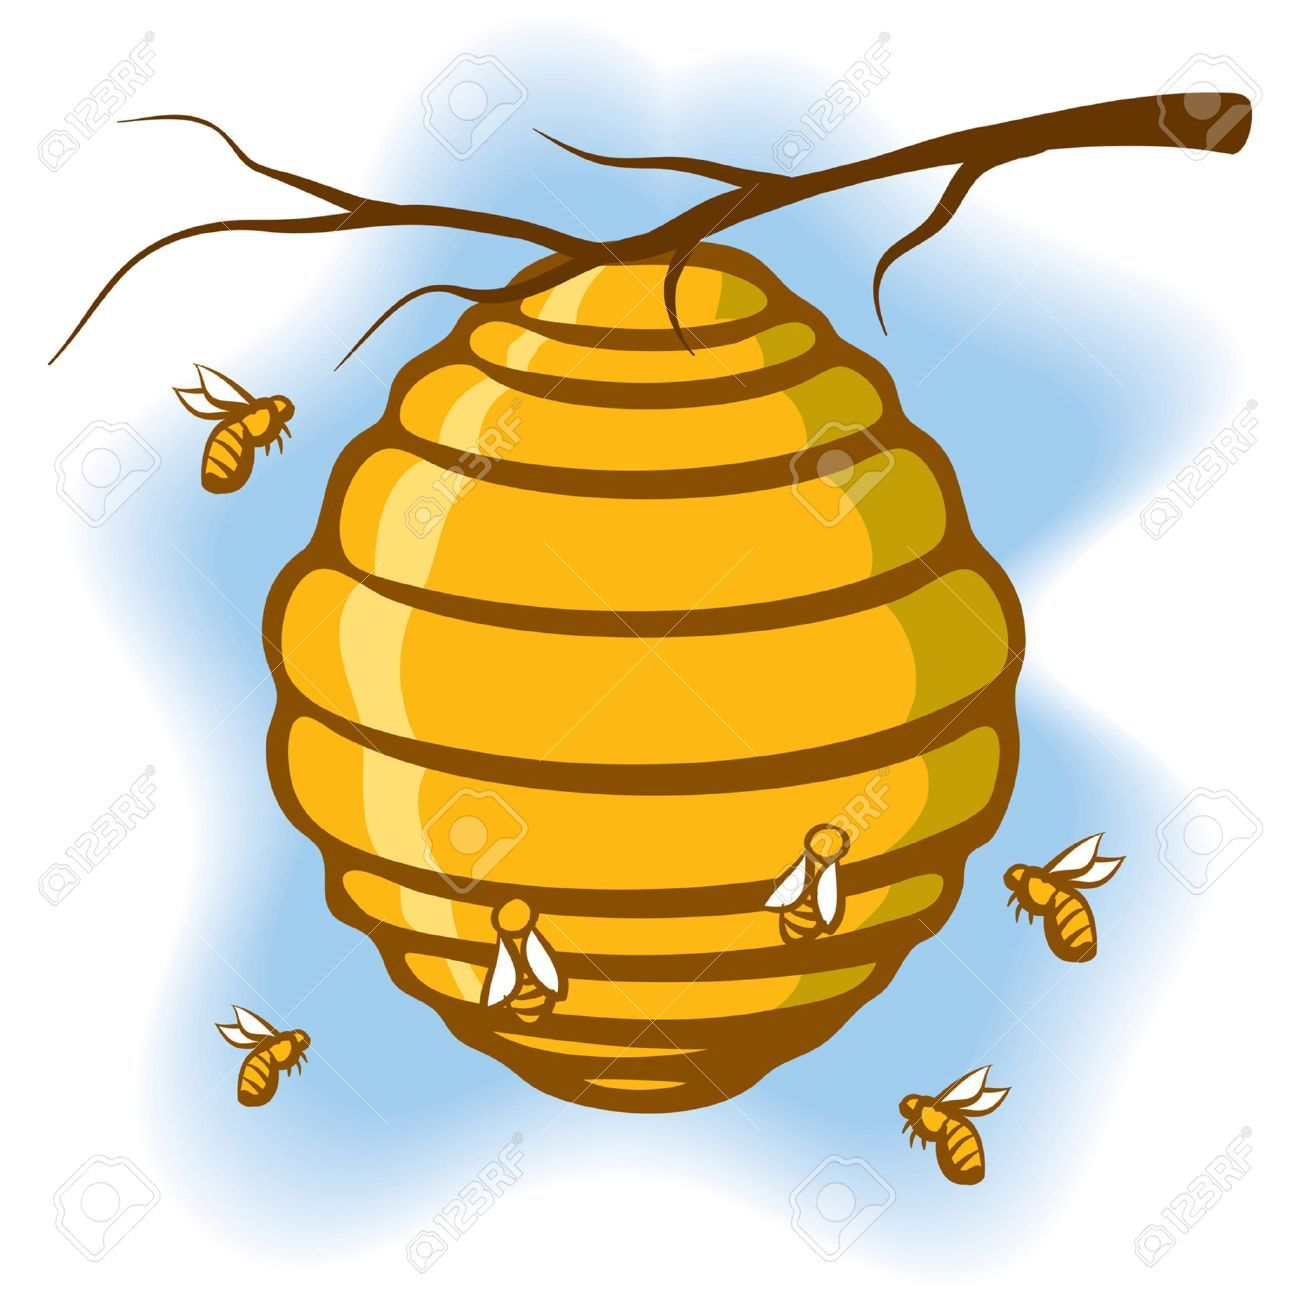 Bee hives in trees clipart clip art transparent stock Animated Bee Hive | Free download best Animated Bee Hive on ... clip art transparent stock